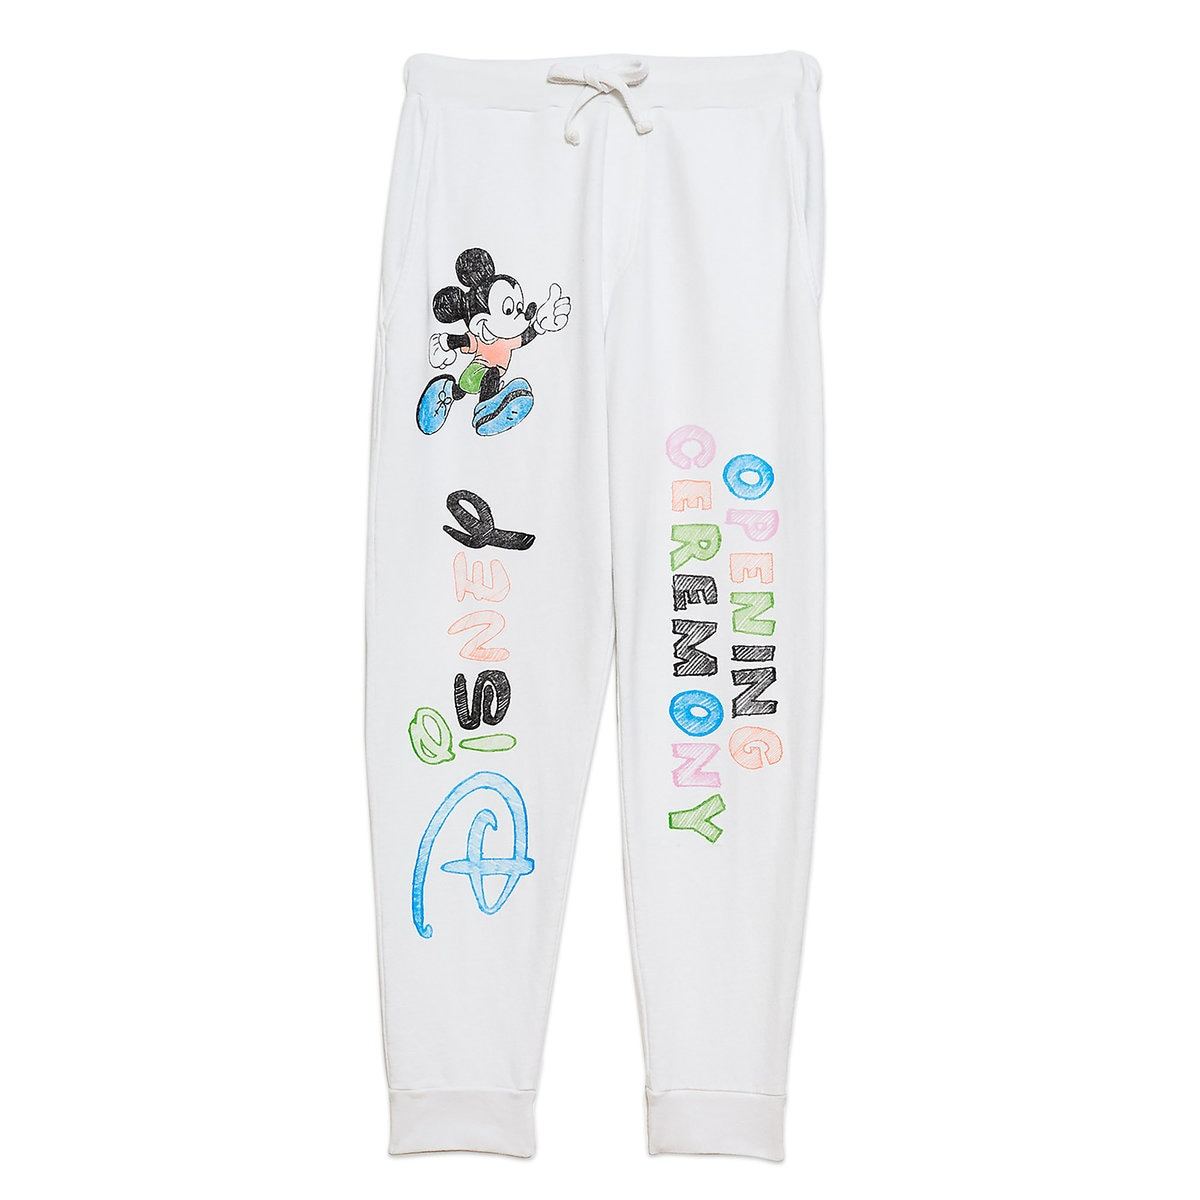 b53afb9a300736 Product Image of Mickey Mouse Sweatpants for Adults by Opening Ceremony -  White # 1